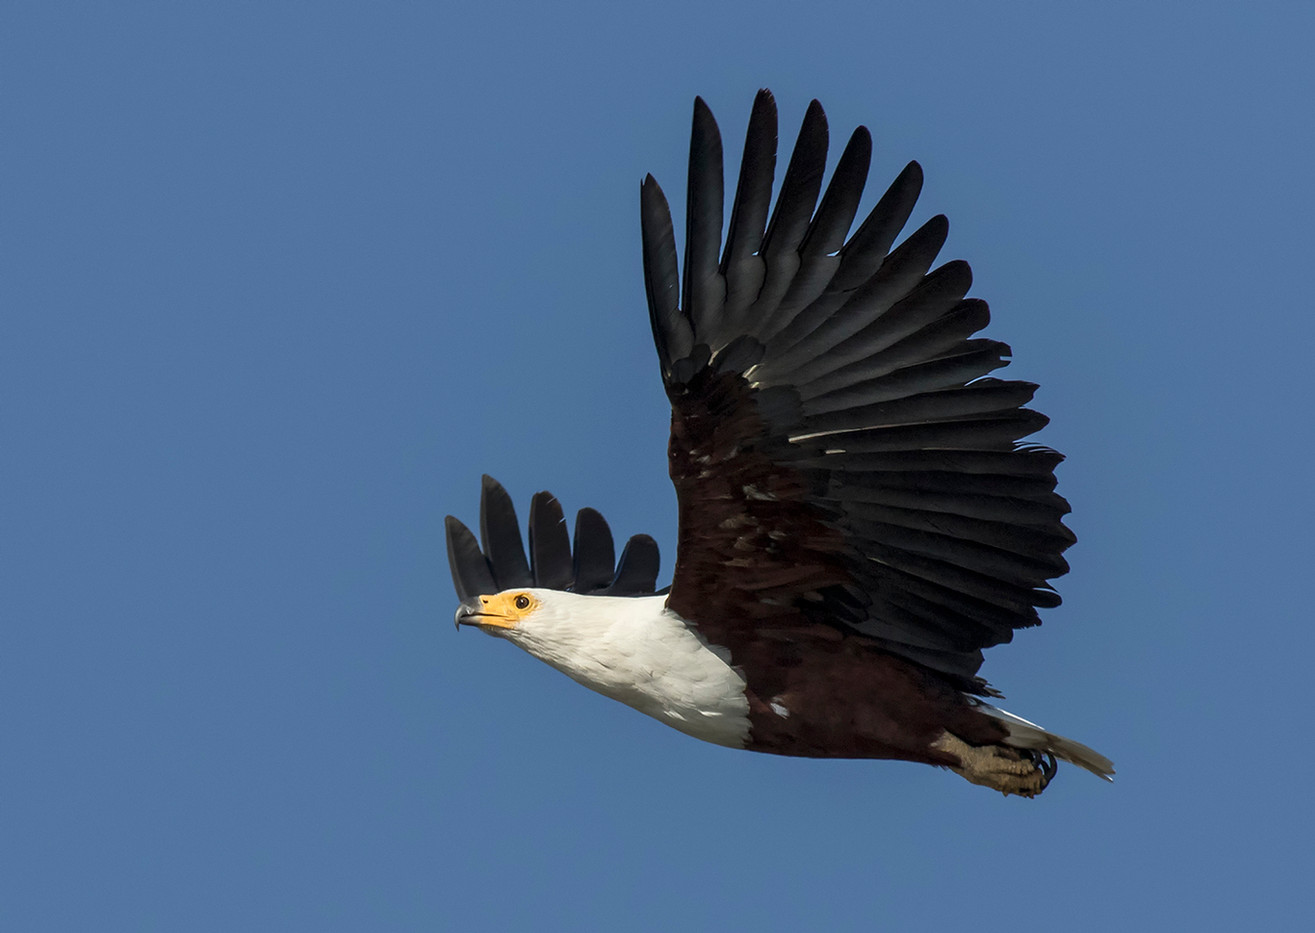 17 AFRICAN FISH EAGLE IN FLIGHT by Glenn Welch